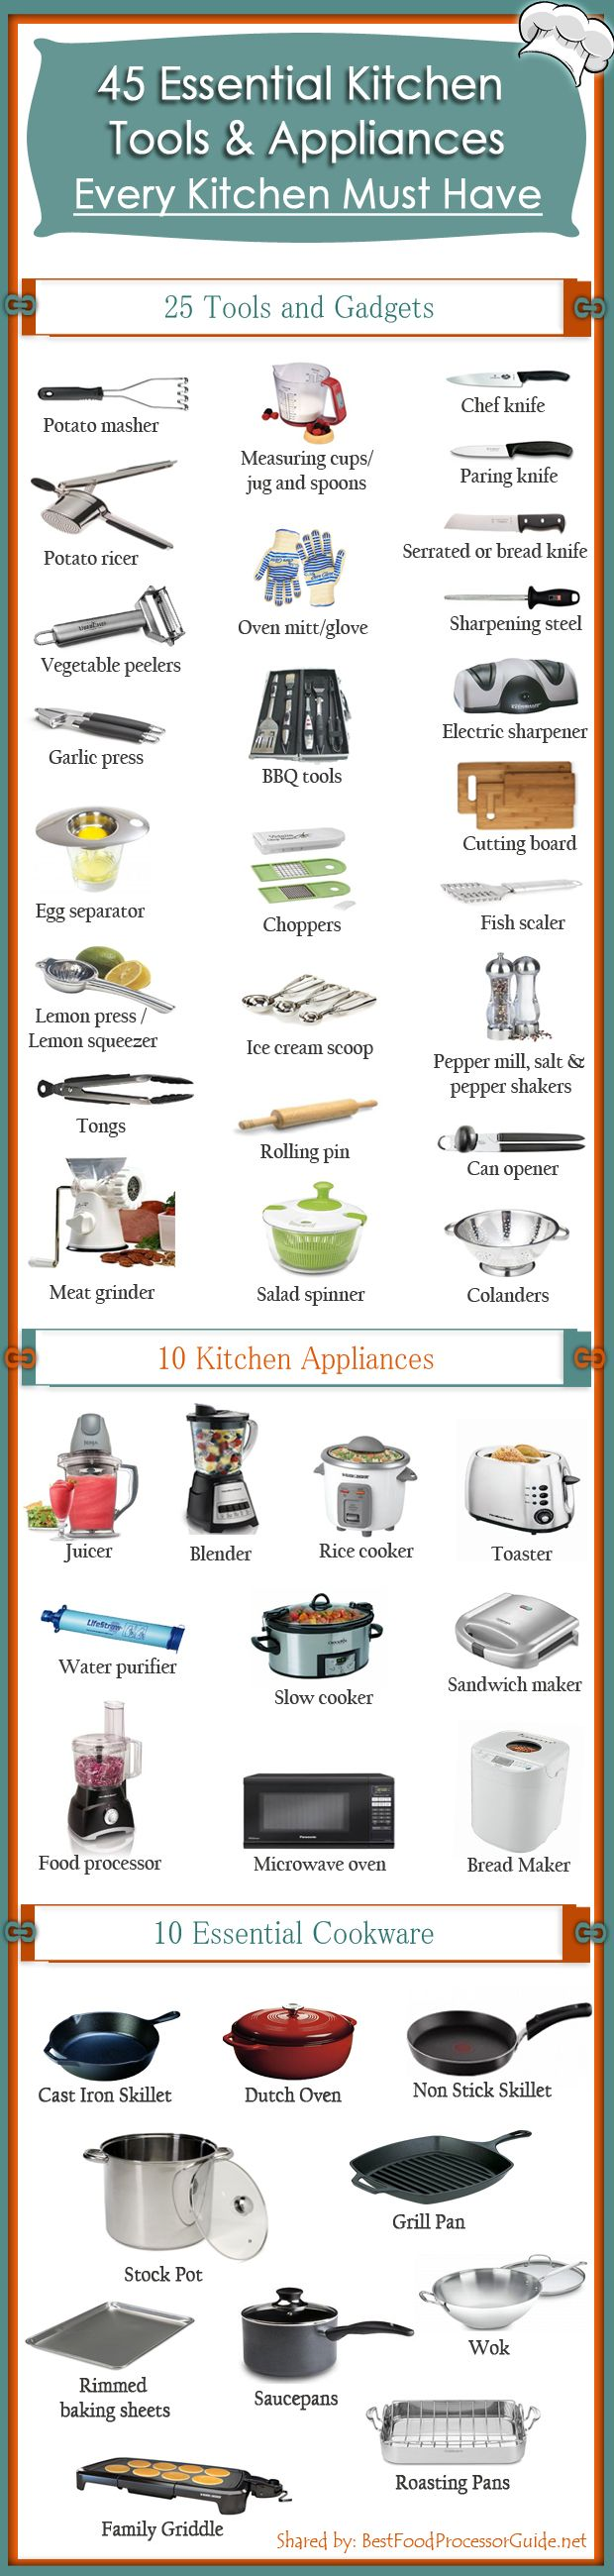 45 Essential Kitchen Tools And Liances Every Must Have Designed By Bdhire